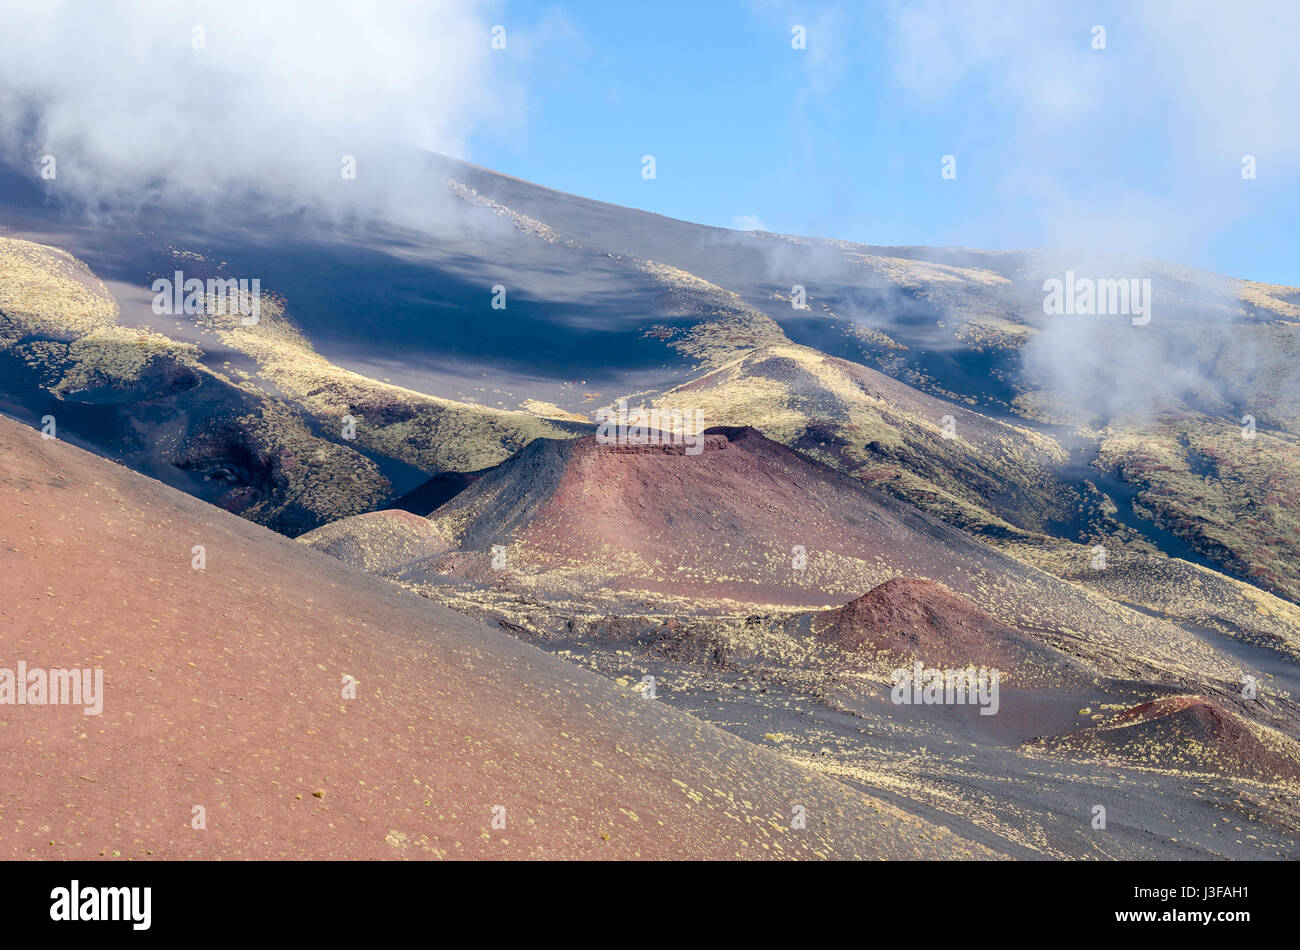 Southern flank of Mount Etna, an active stratovolcano on the east coast of Sicily, Italy, showing lateral crater. - Stock Image